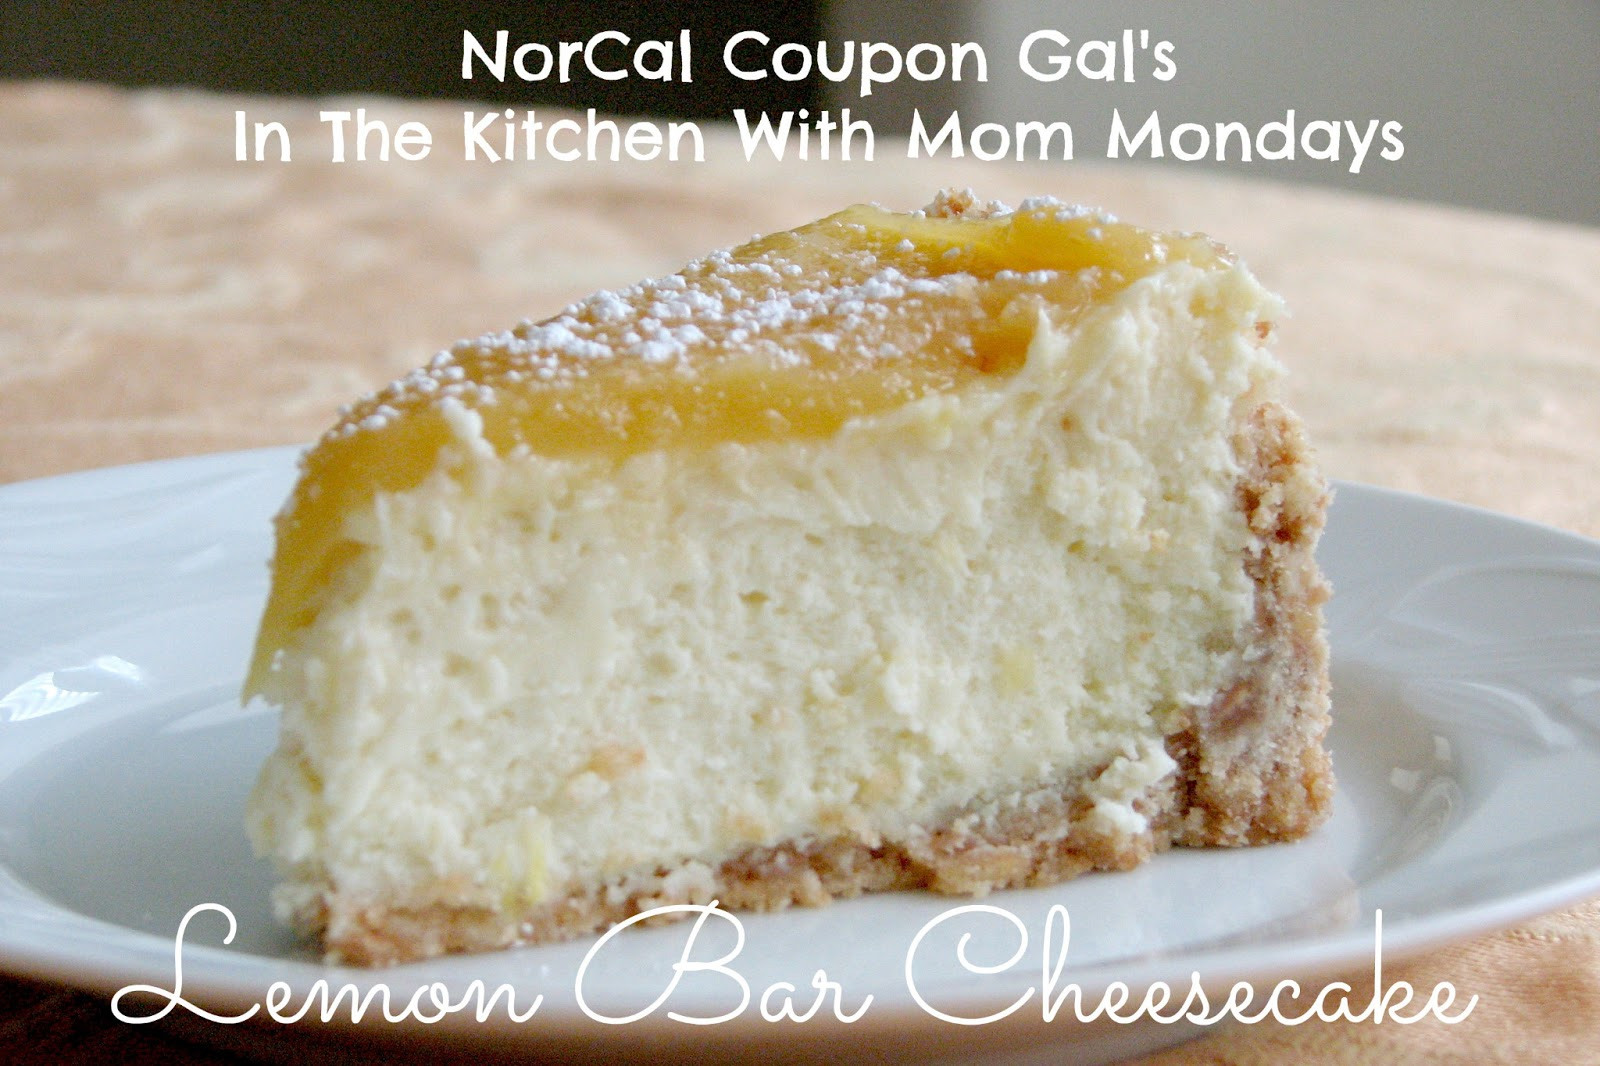 ... Kitchen With Mom Mondays - Lemon Bar Cheesecake - NorCal Coupon Gal